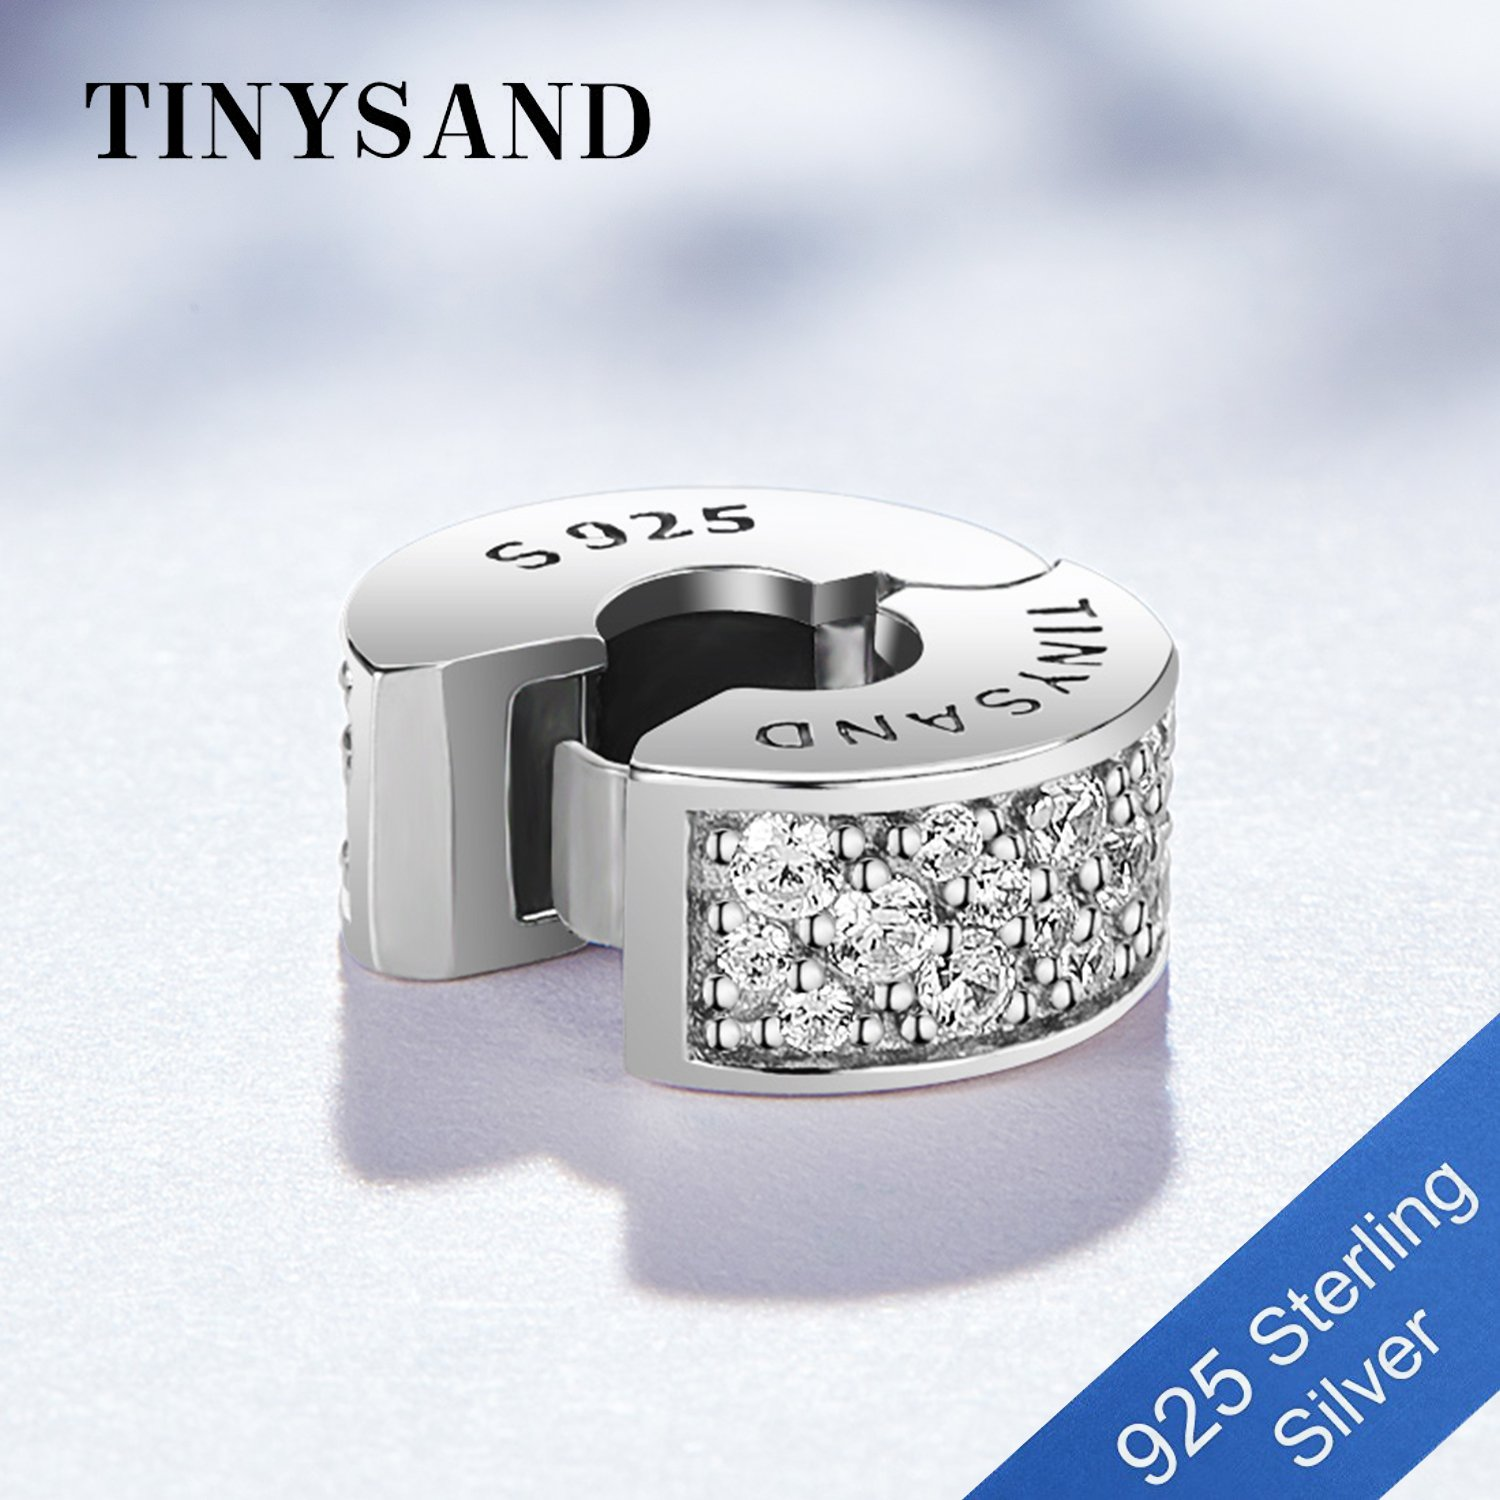 TINYSAND 925 Sterling Silver Dazzling CZ Clip Lock Stopper Spacers Charms Beads Fits European Snake Bracelet Bangle Unique Jewelry for Girls Women by TINYSAND (Image #4)